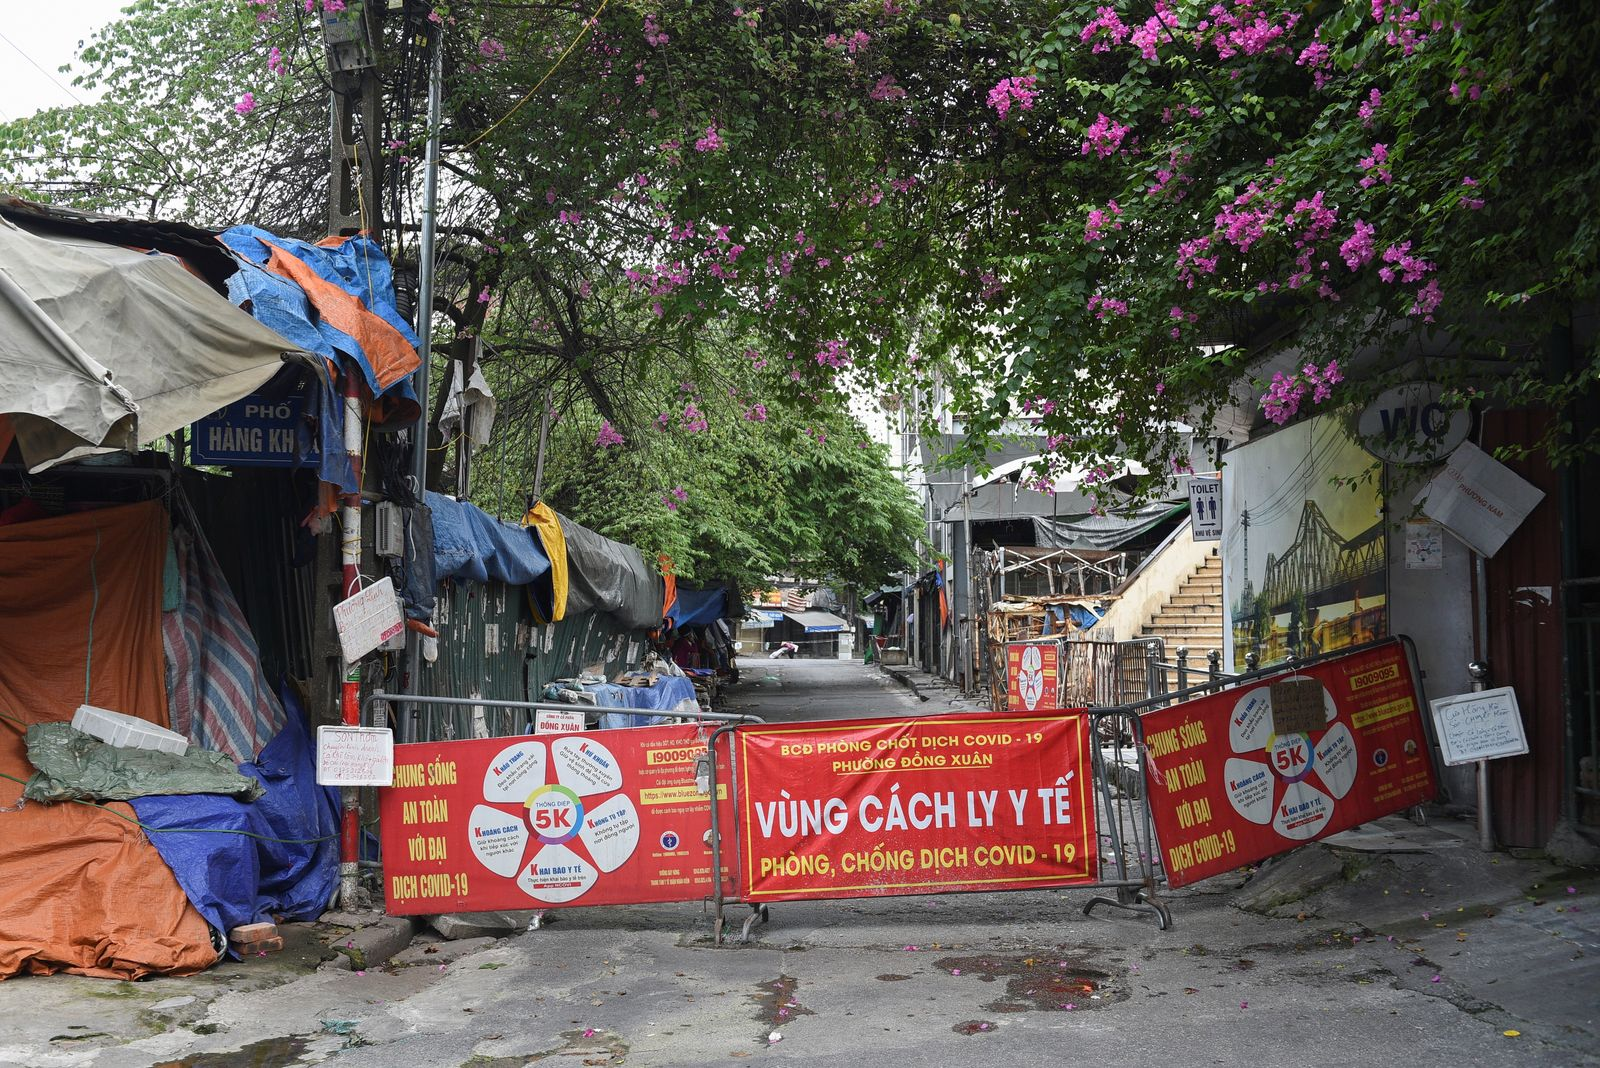 A barrier is pictured in a quarantine area amid COVID19 in Hanoi